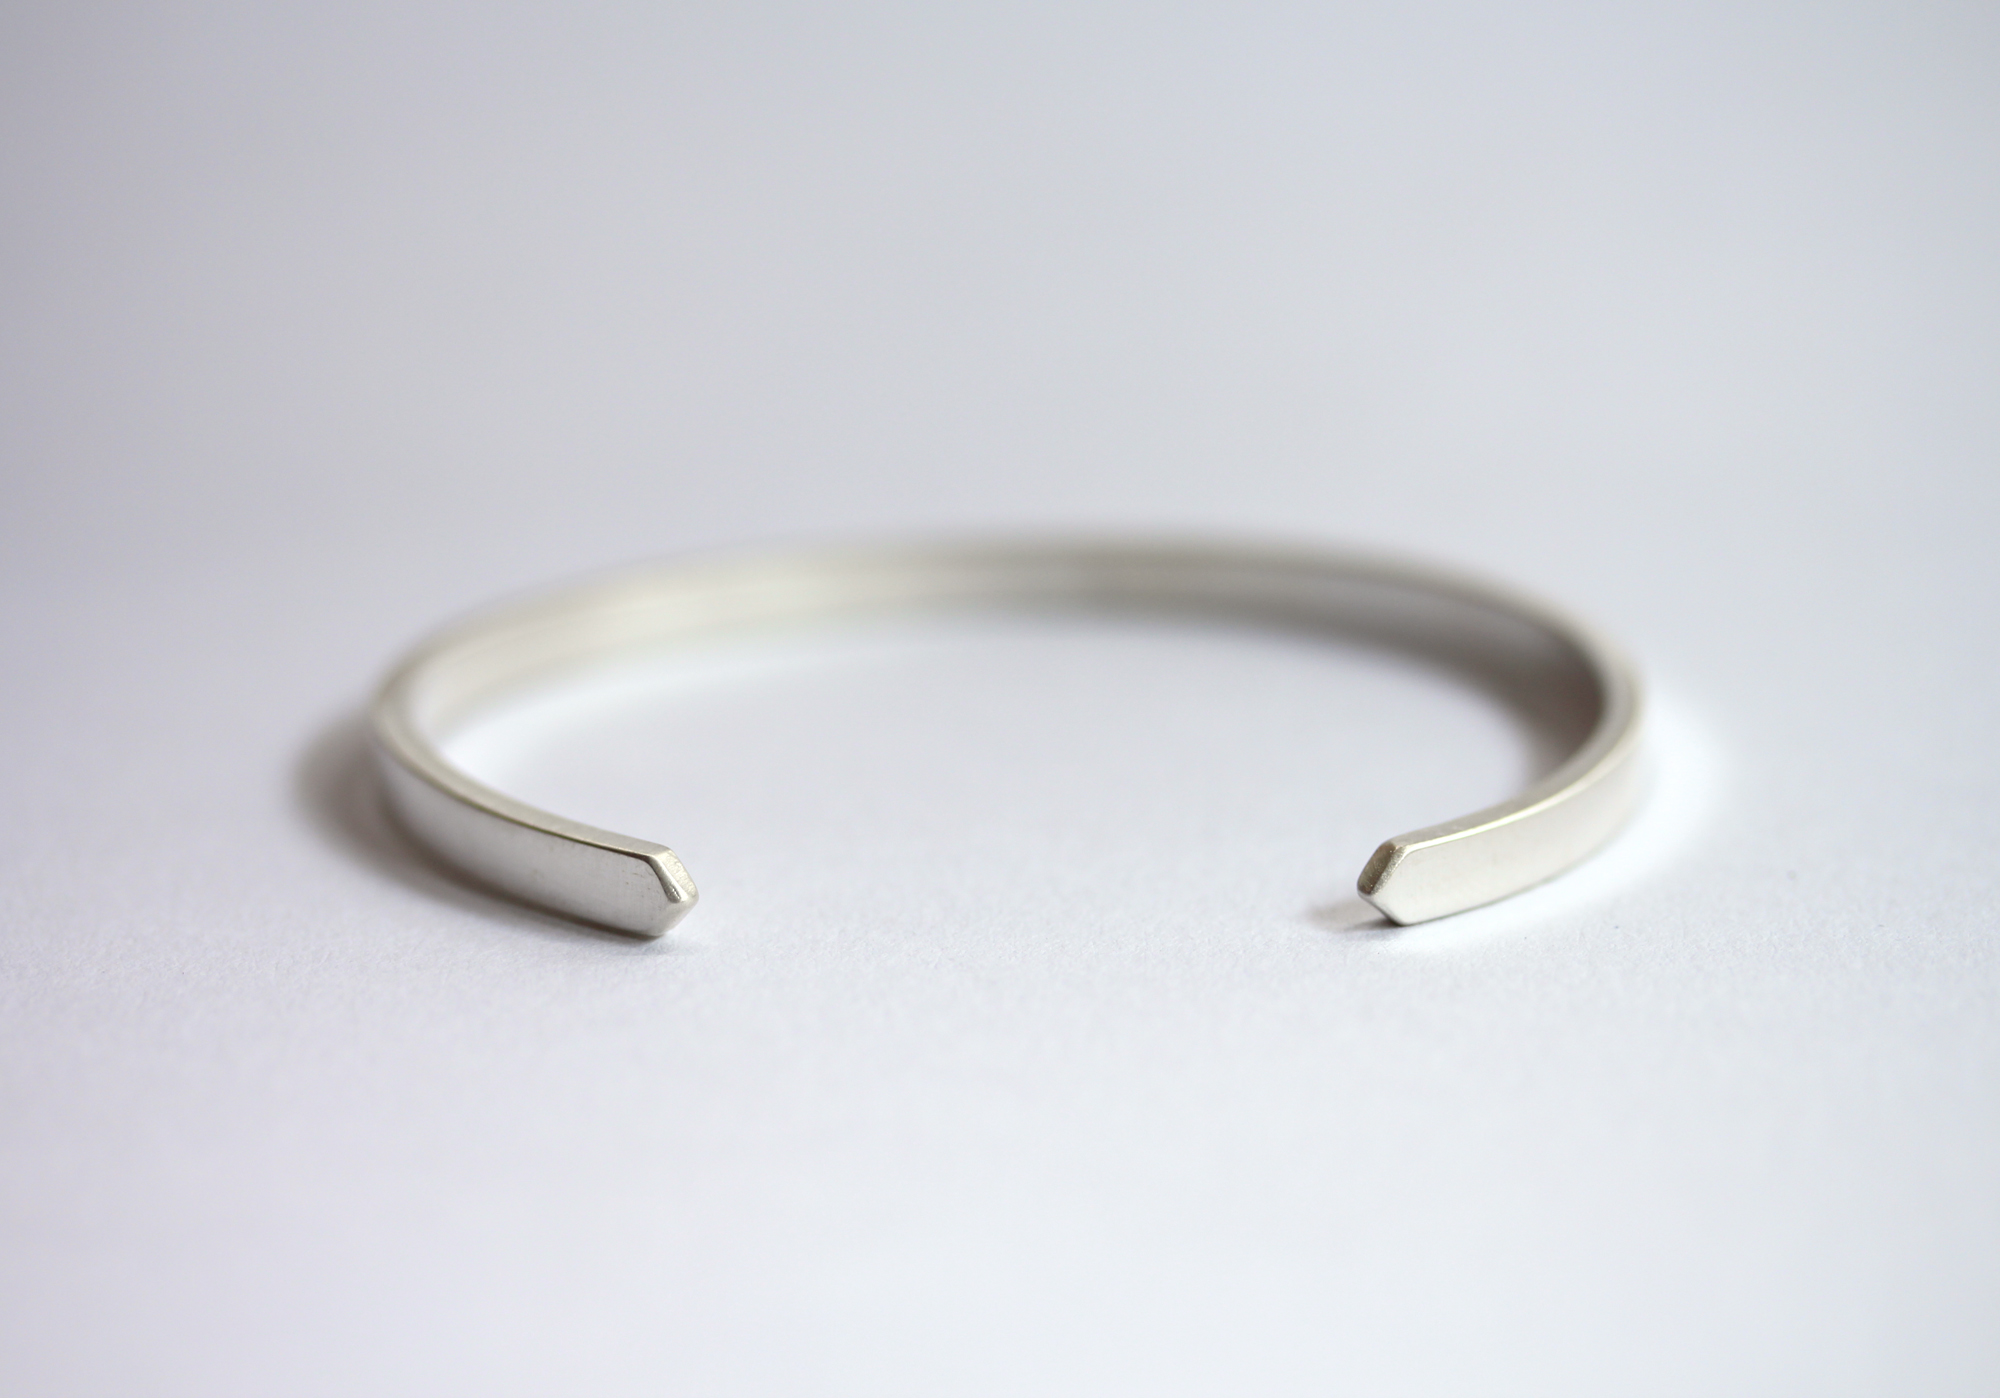 10 stylish gifts to give your wedding party rebecca mir grady cuff mcleod style on plain surface